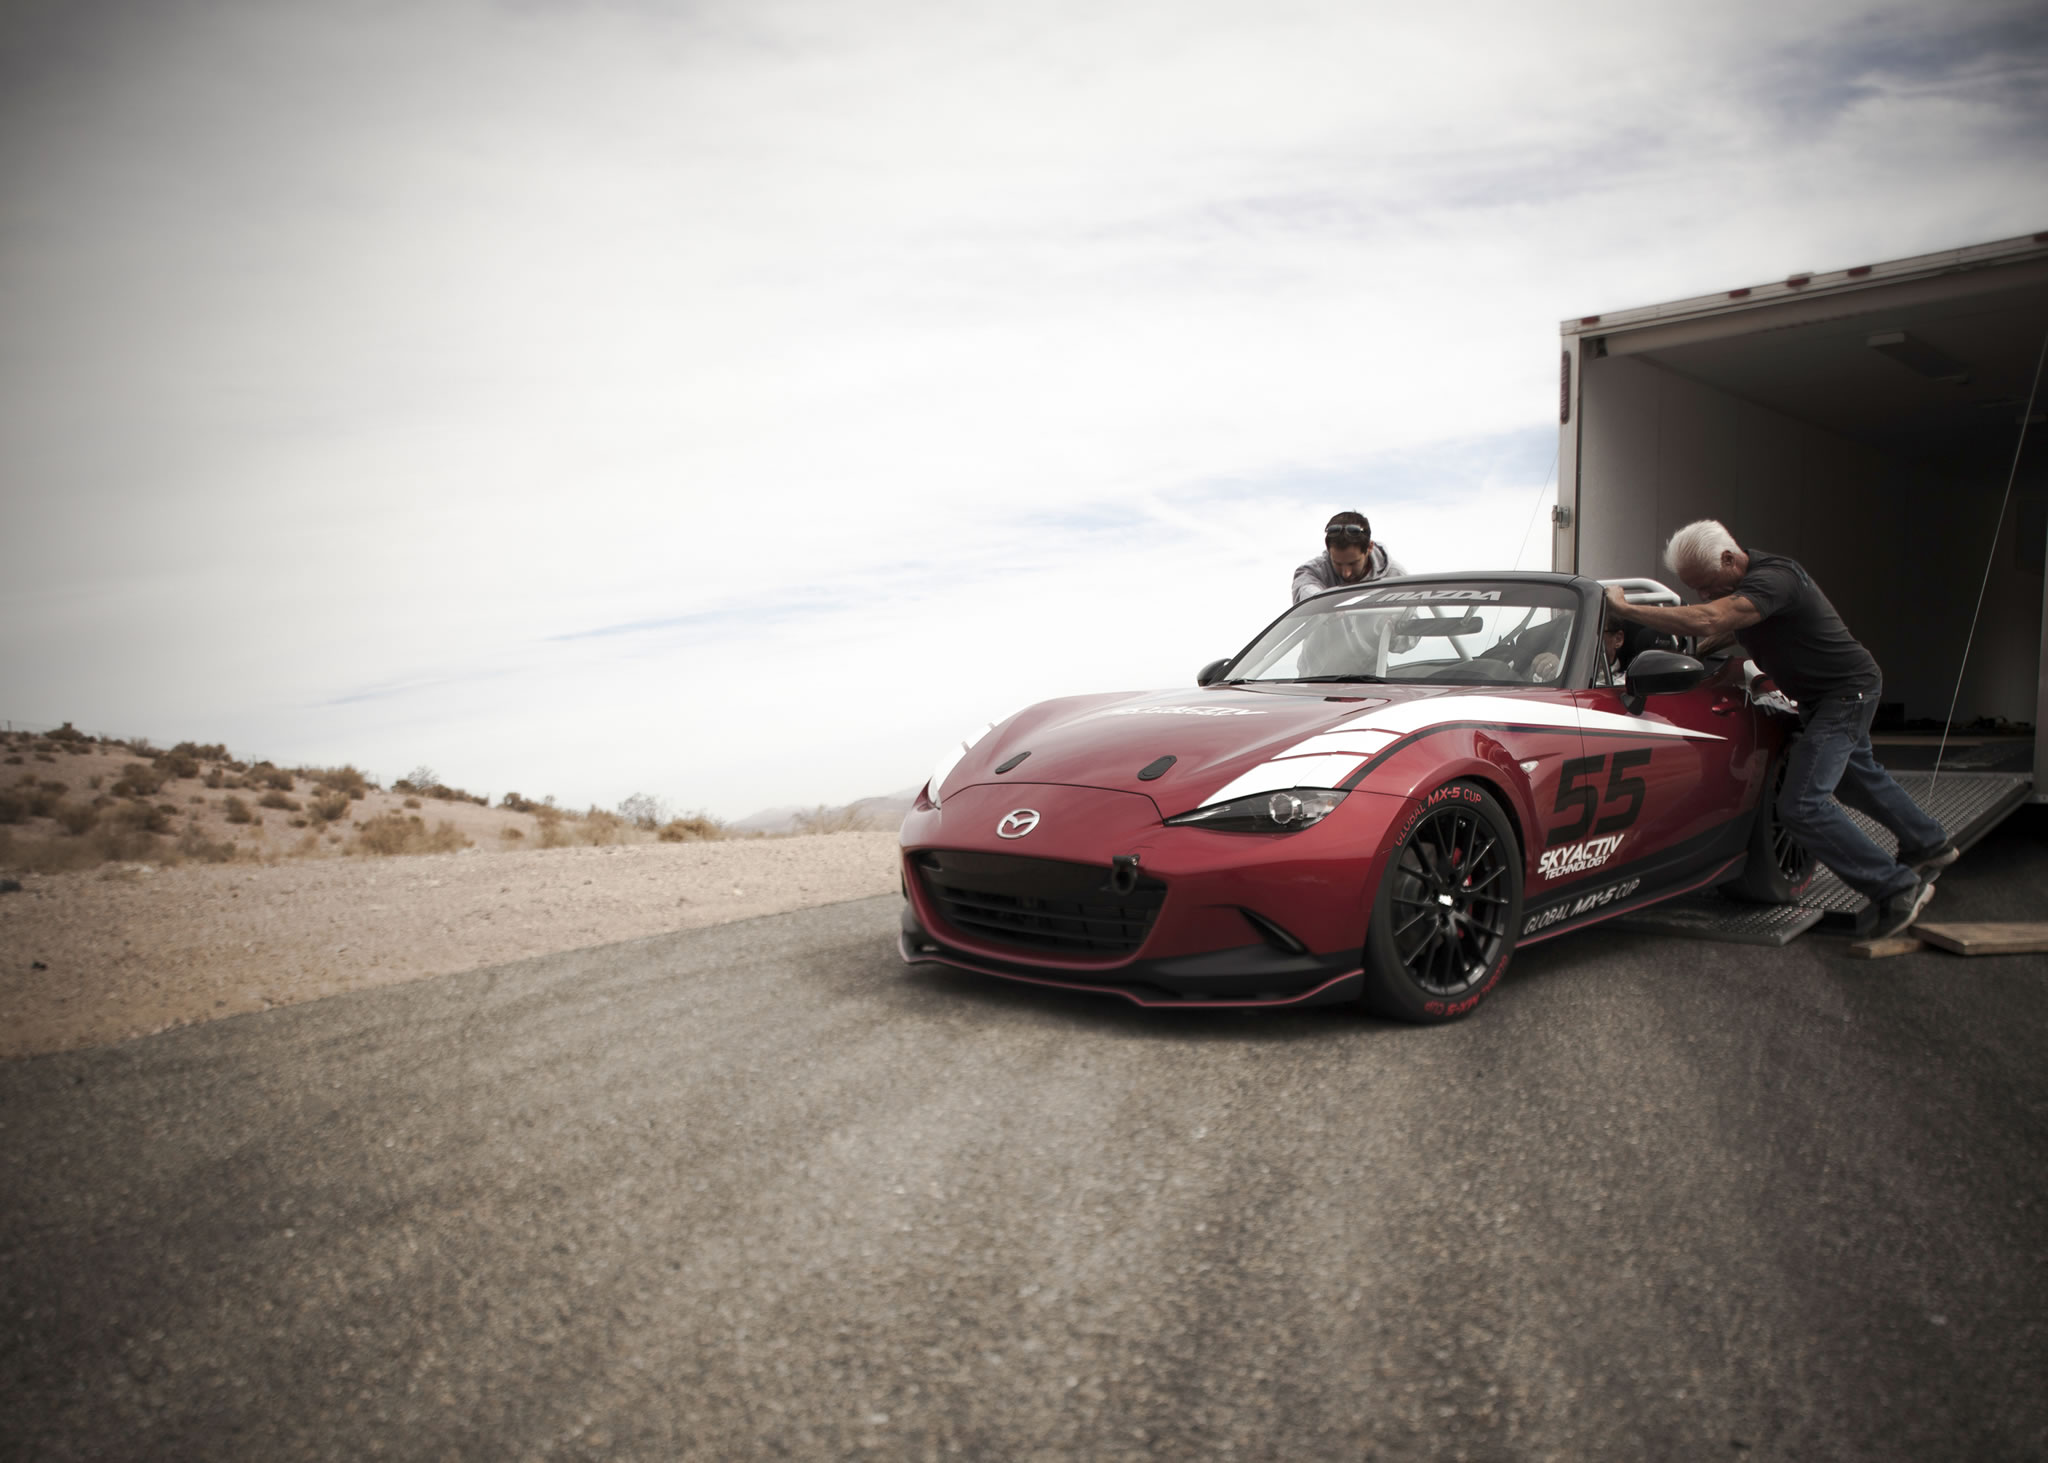 2016 mazda mx 5 miata cup race car front photo size 2048 x 1463 nr 8 28. Black Bedroom Furniture Sets. Home Design Ideas